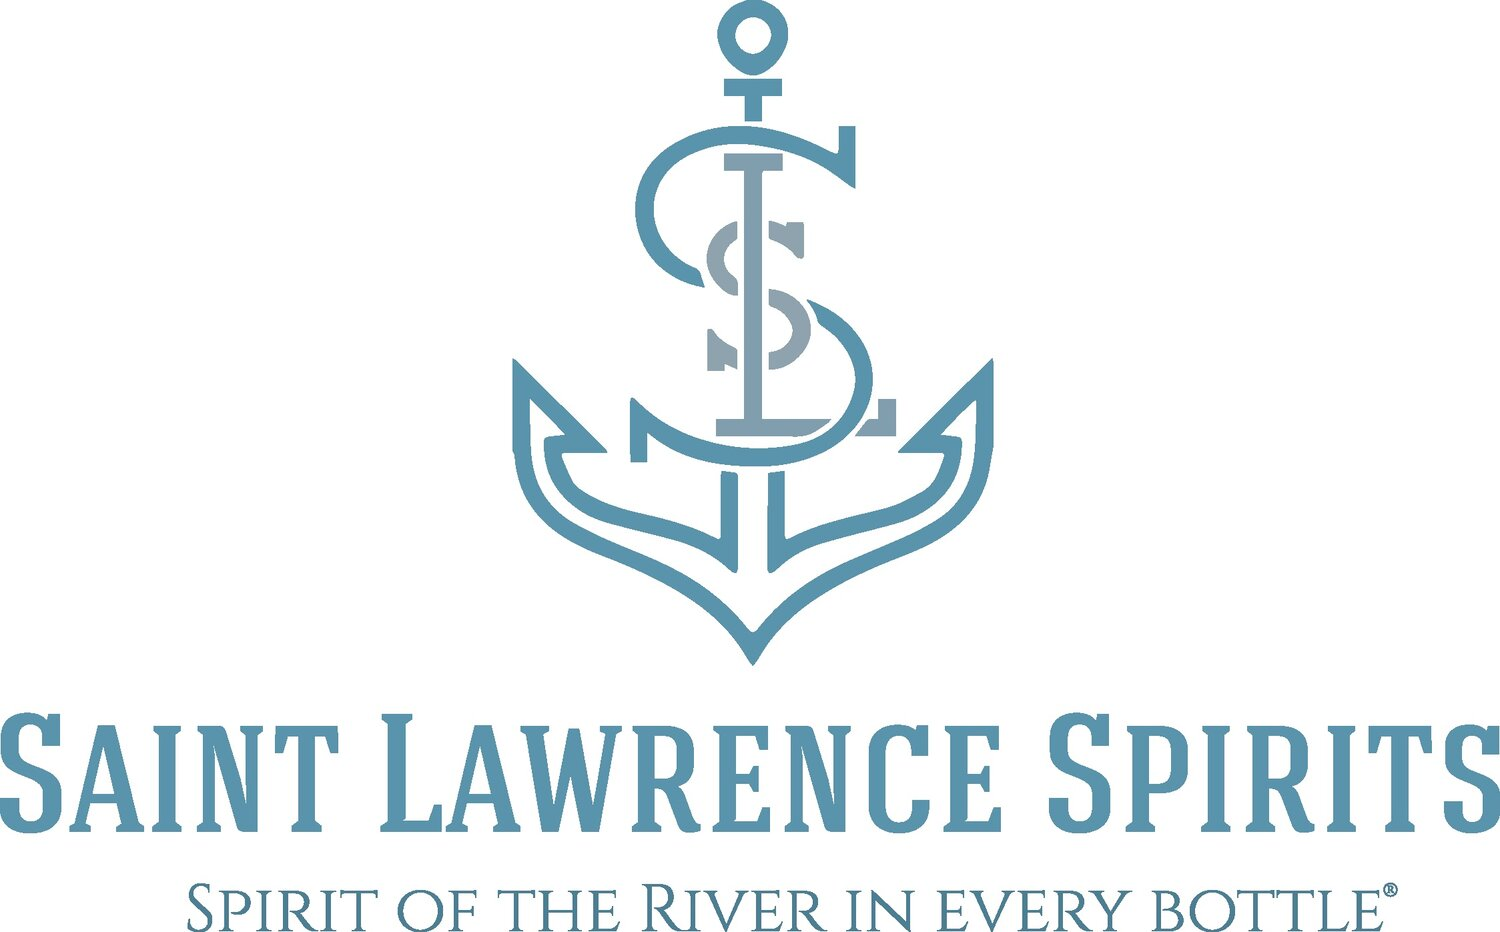 Saint Lawrence Spirits